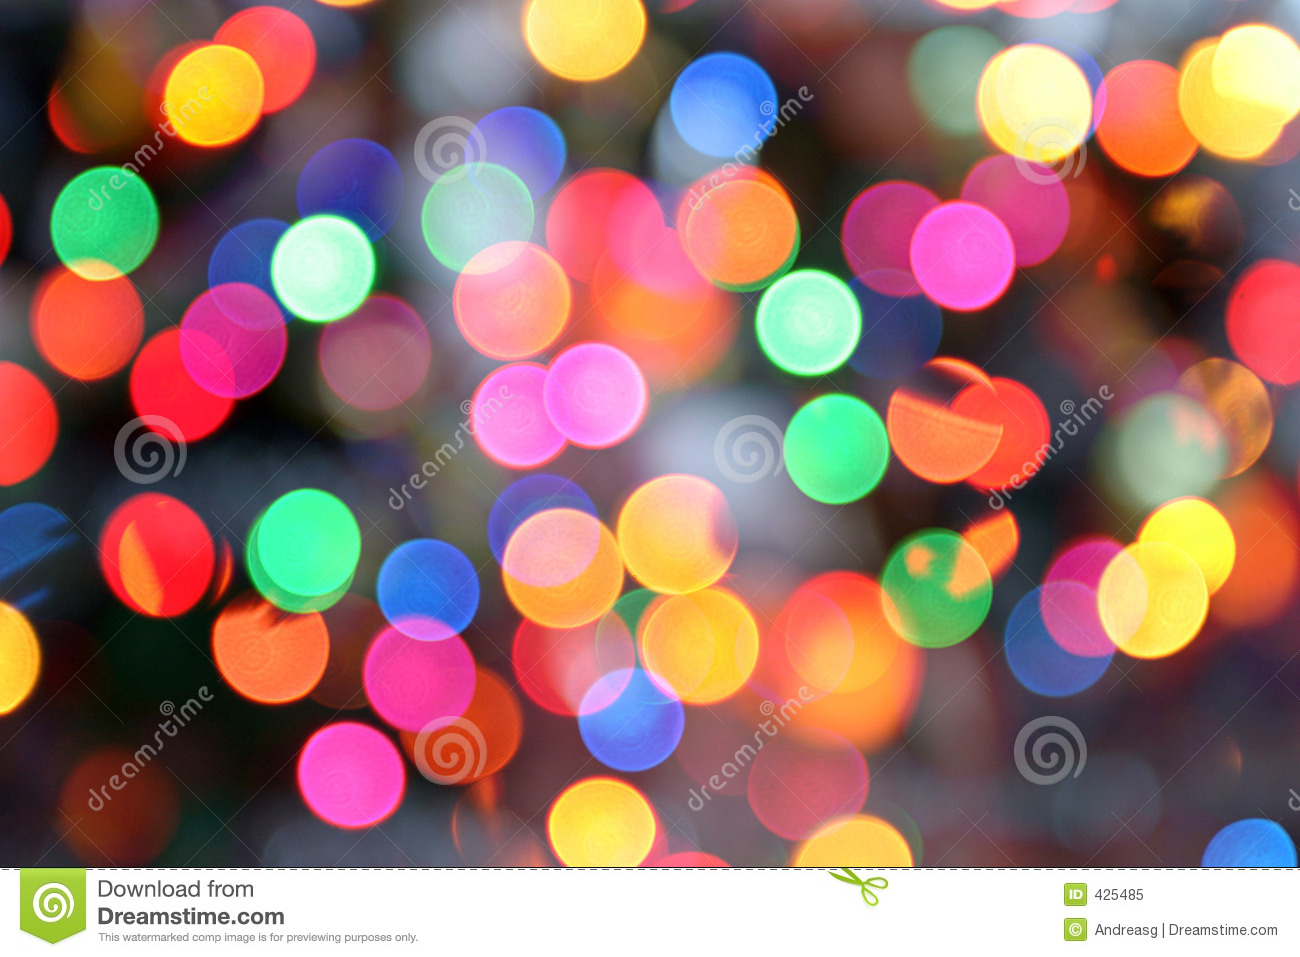 3d Colours Wallpaper Heart Disco Lights Royalty Free Stock Photo Image 425485